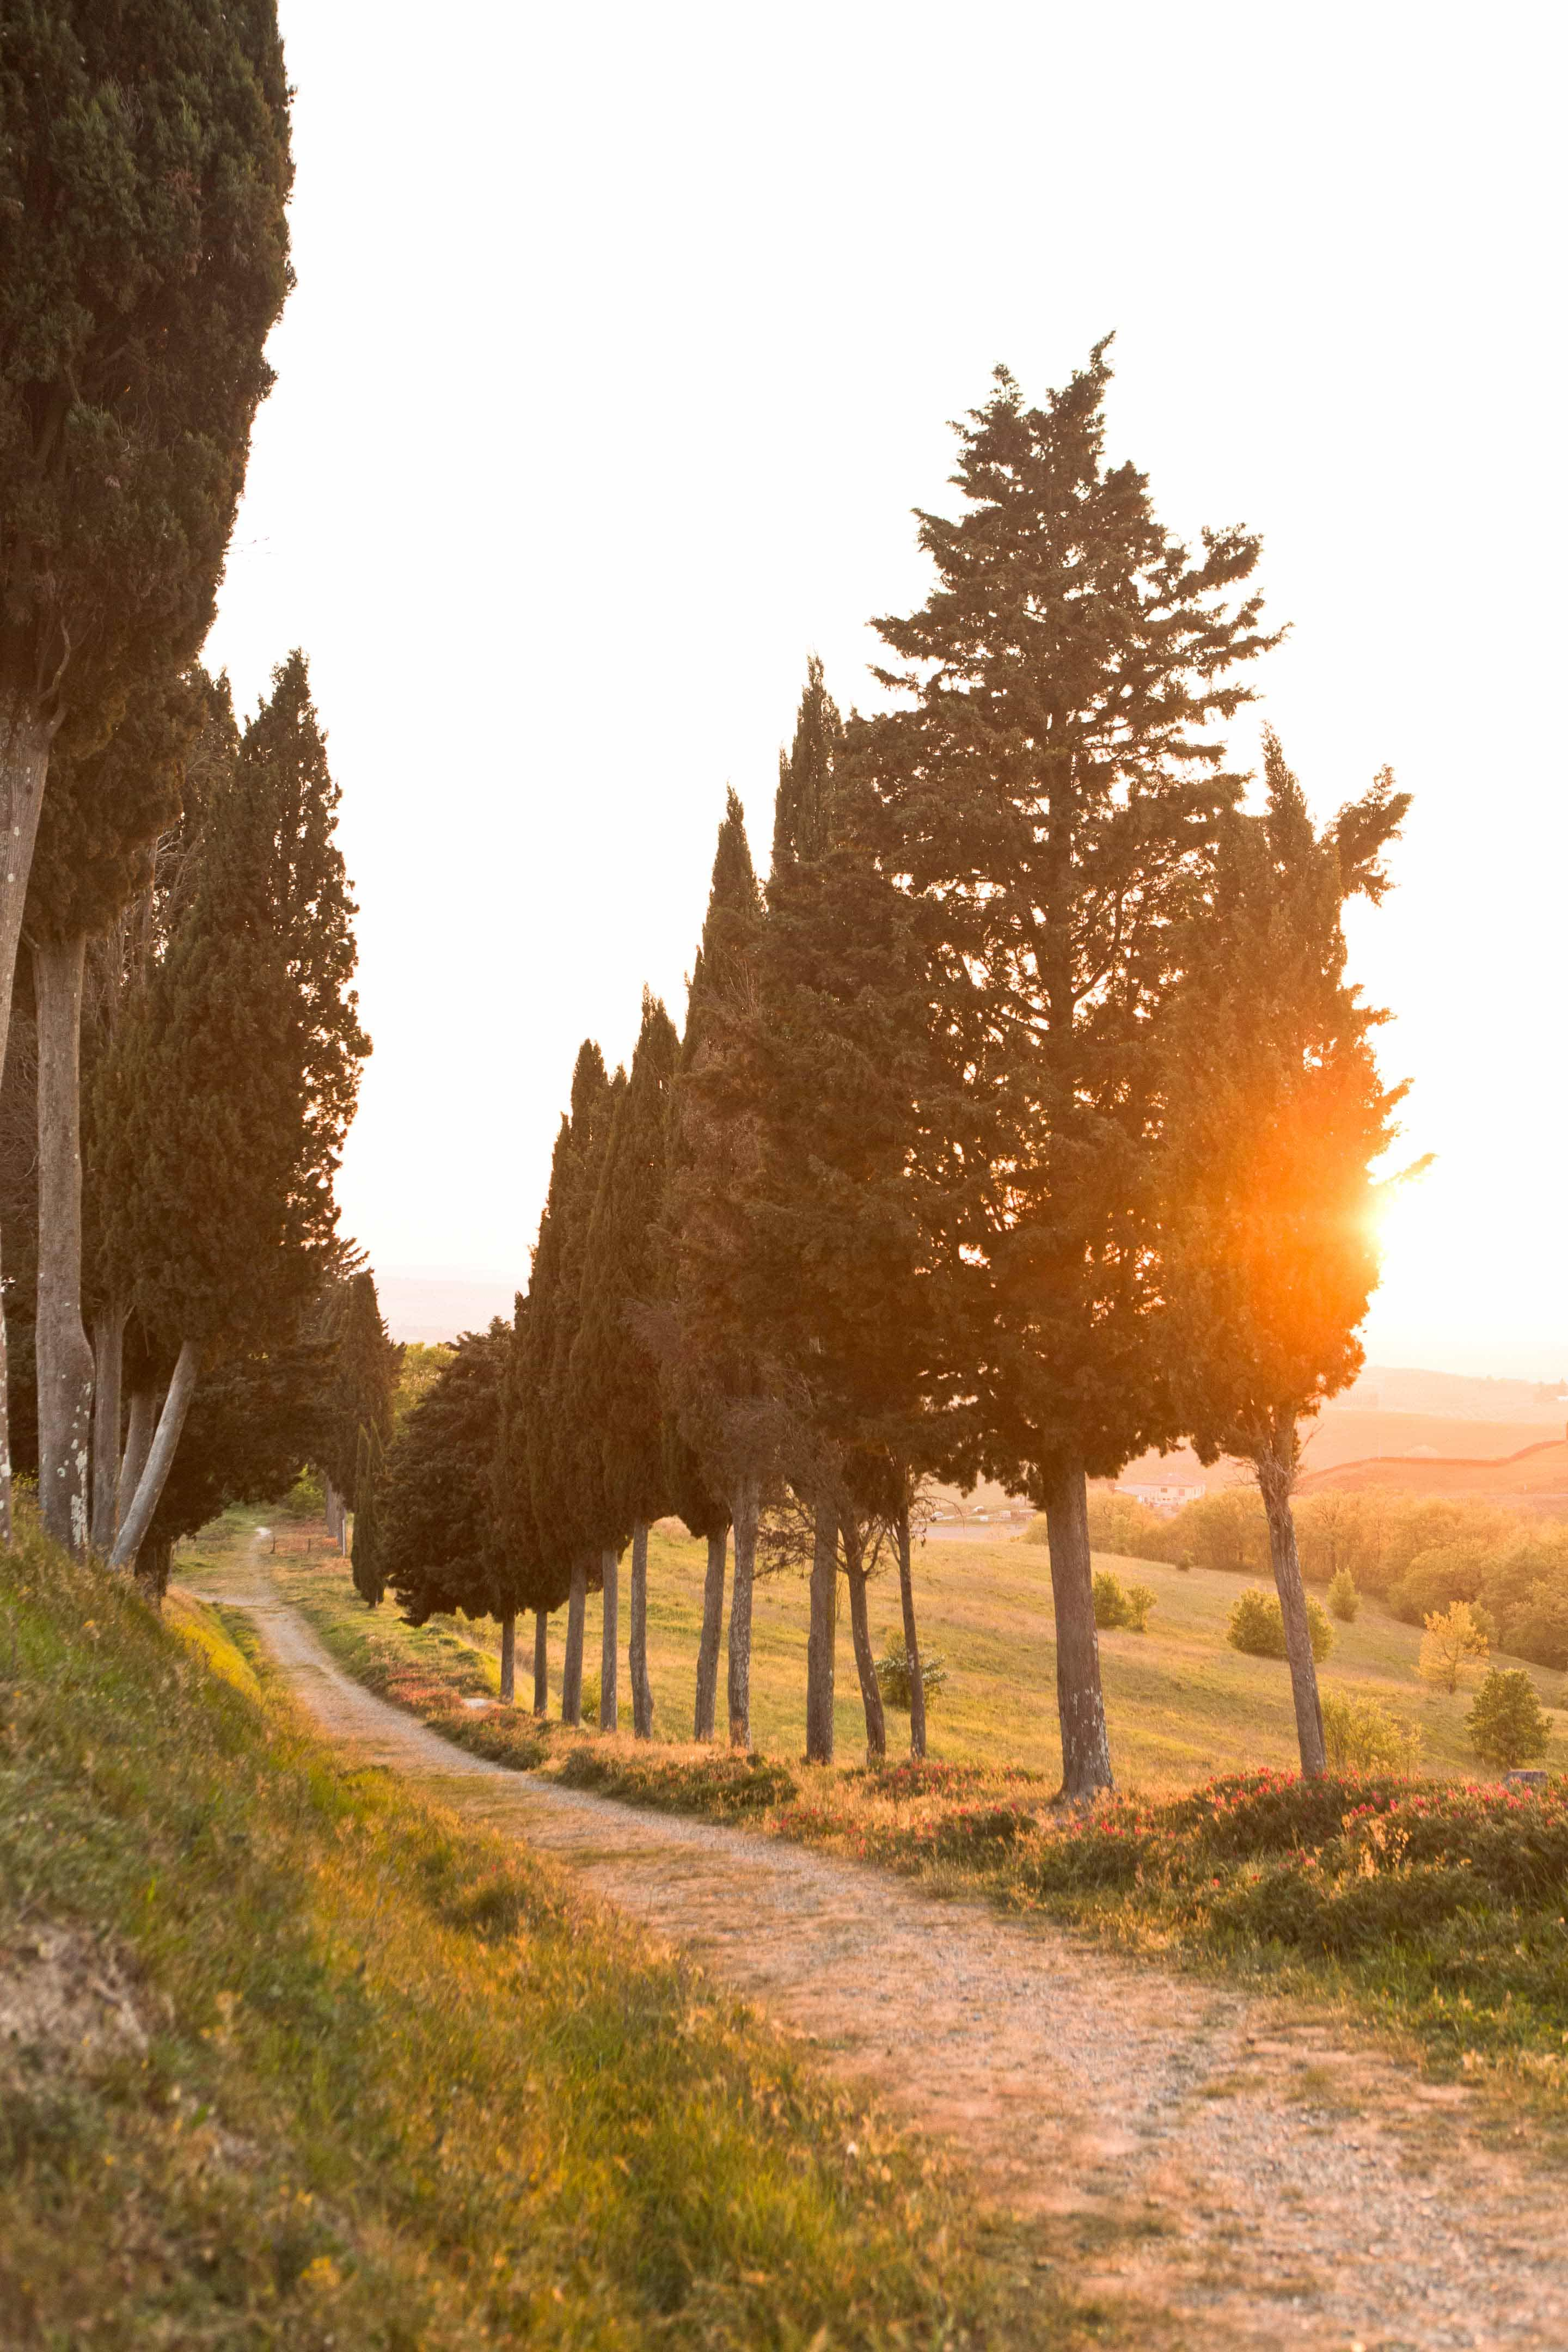 the scenery of tuscany at sunset